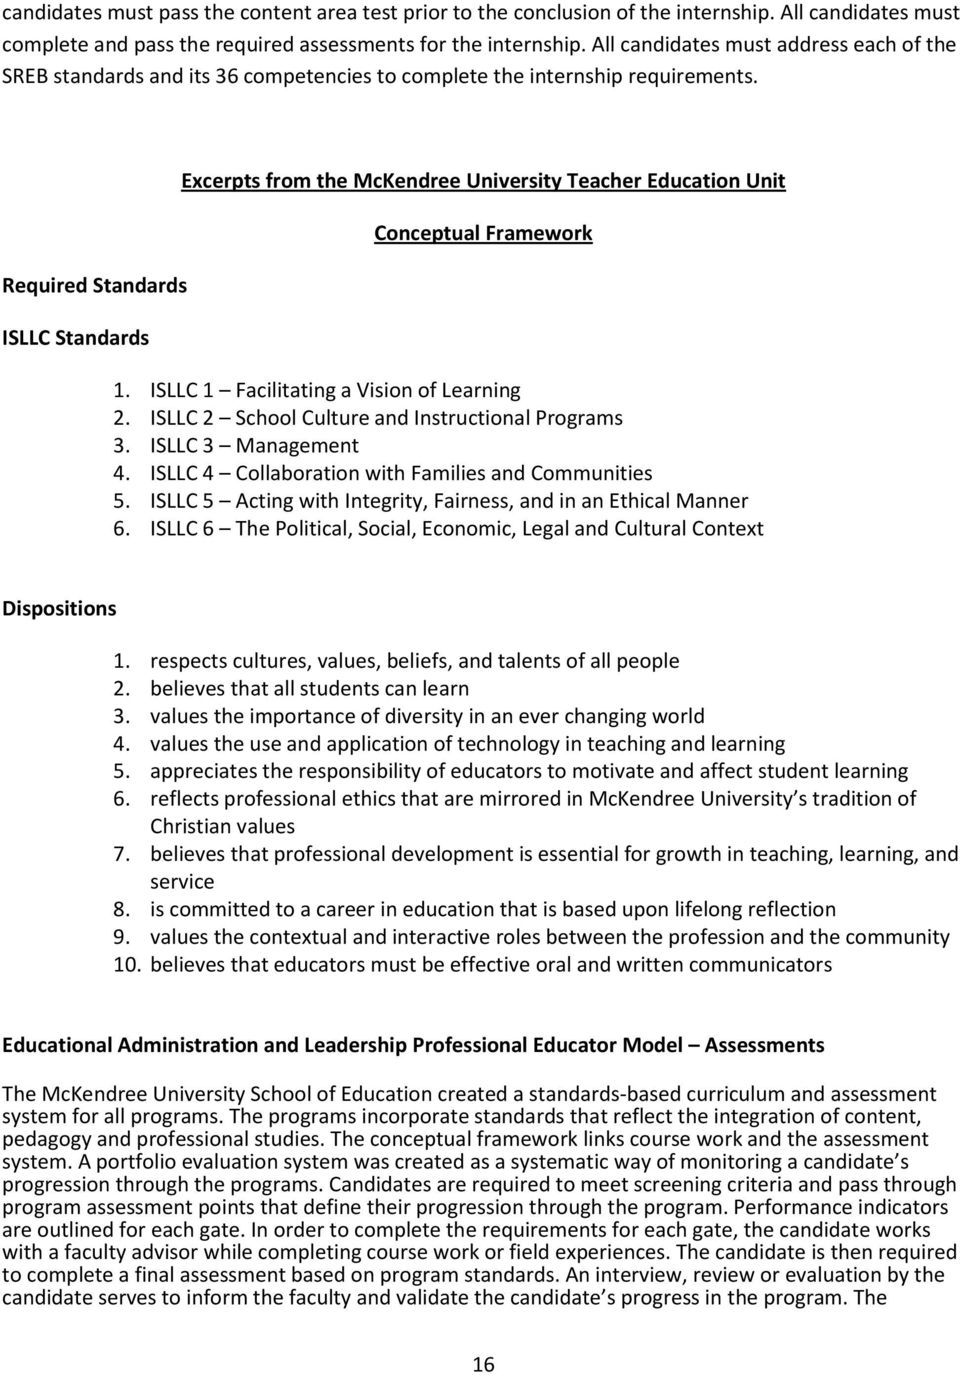 Required Standards ISLLC Standards Excerpts from the McKendree University Teacher Education Unit Conceptual Framework 1. ISLLC 1 Facilitating a Vision of Learning 2.